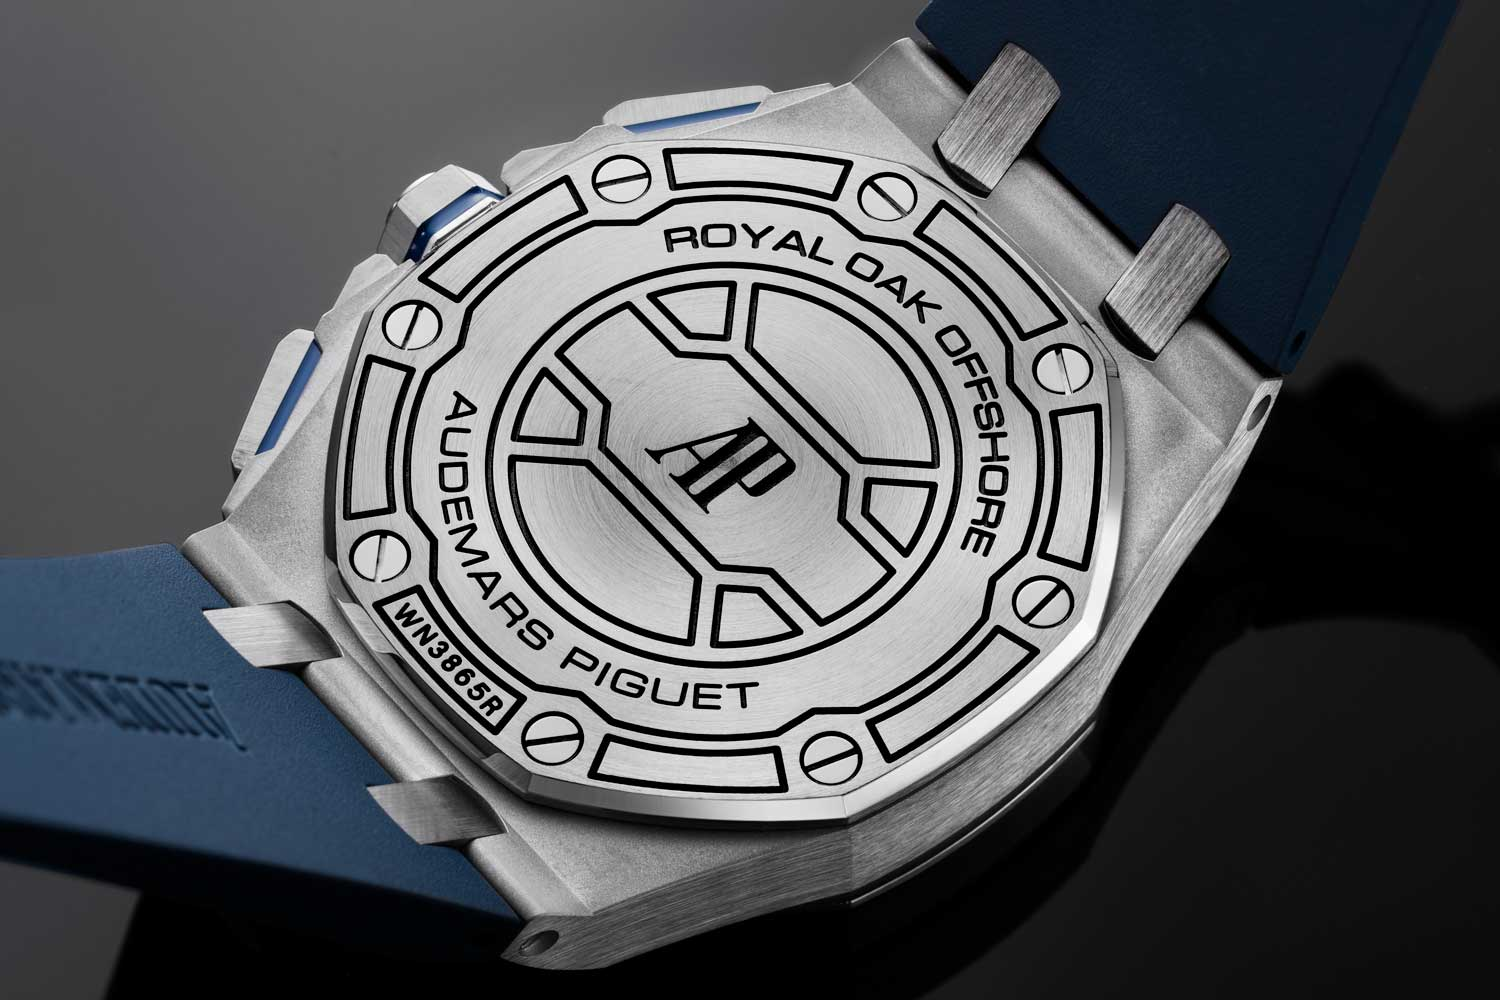 Audemars Piguet Royal Oak Offshore Chronograph (Image © Revolution)